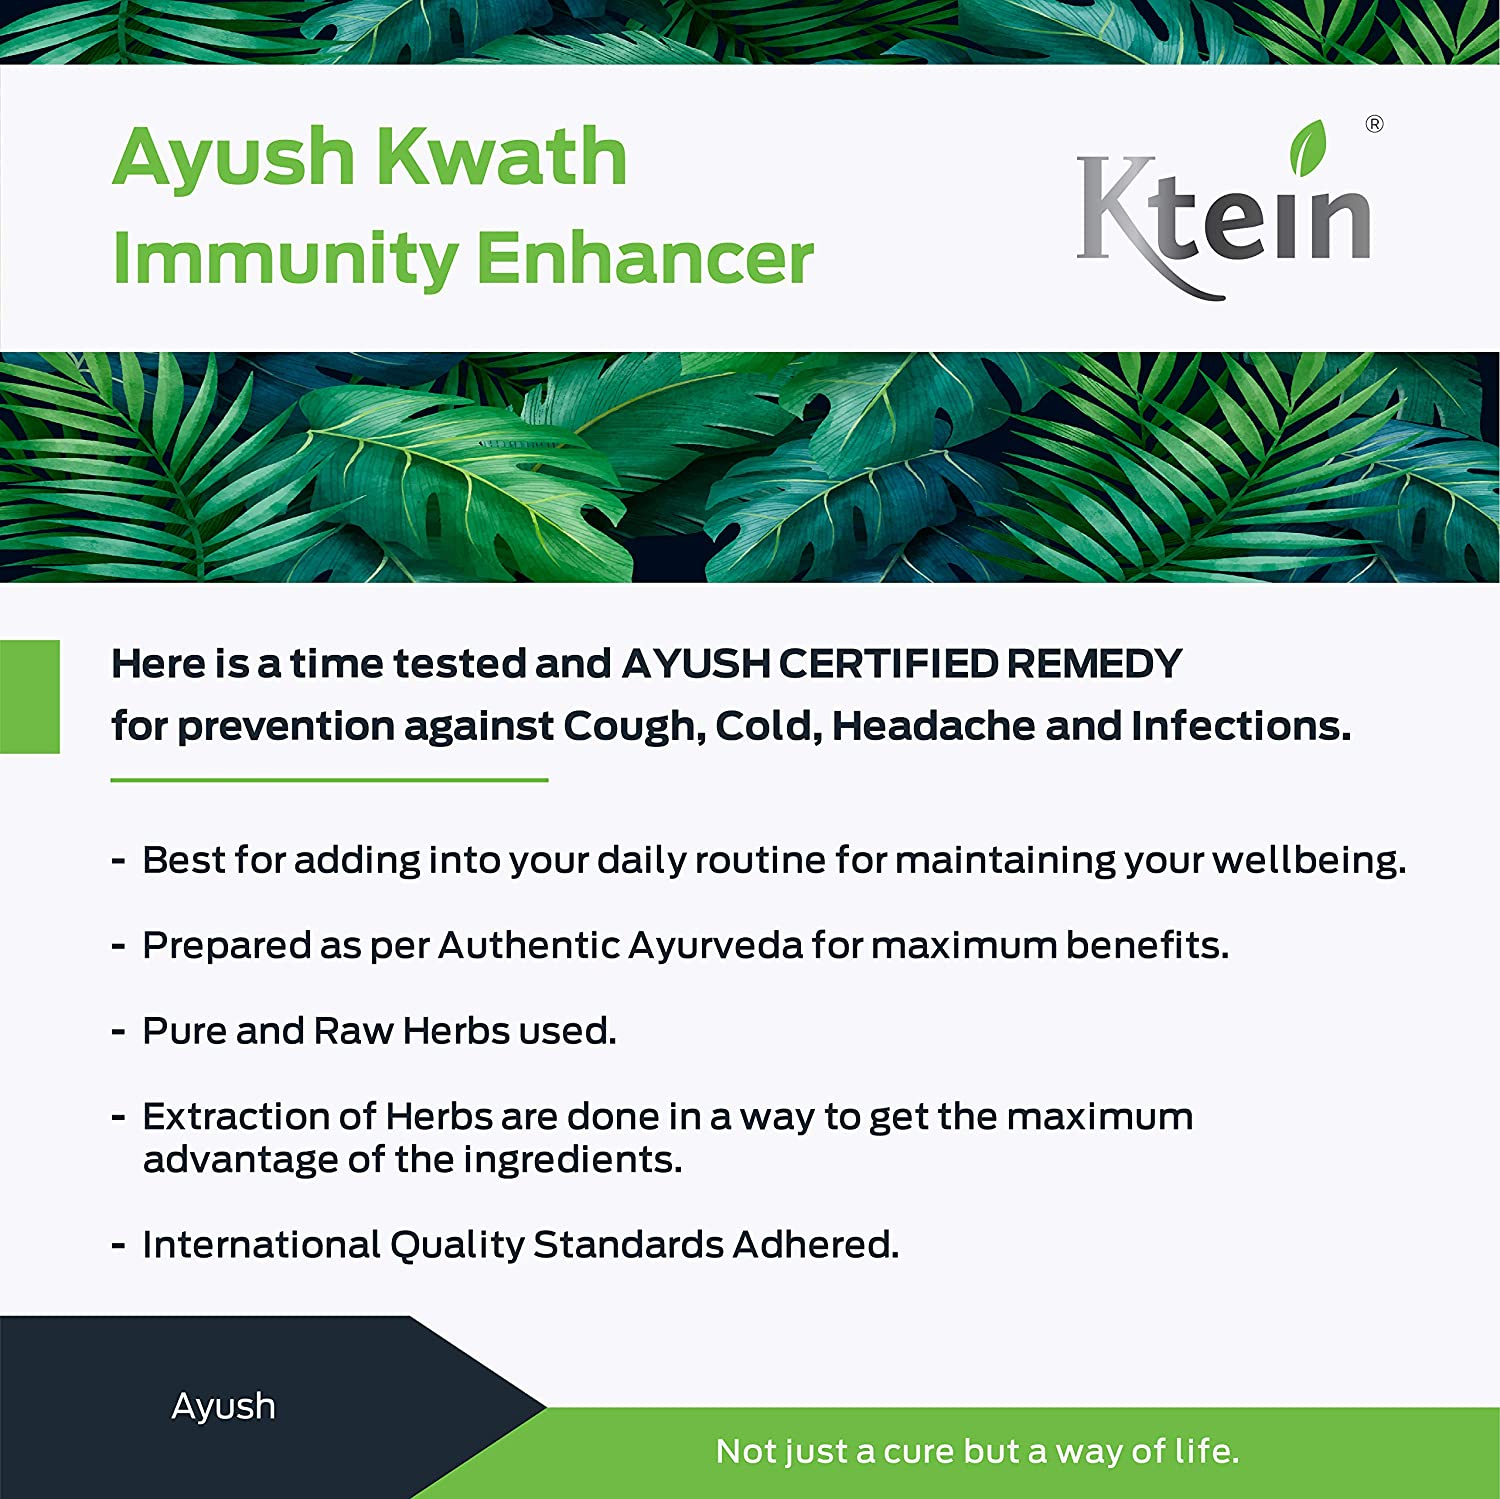 Ktein Ayush Kwath Immunity Enhancer 200gm - Ktein Cosmetics - Essencec Of Natural Hair Care Product